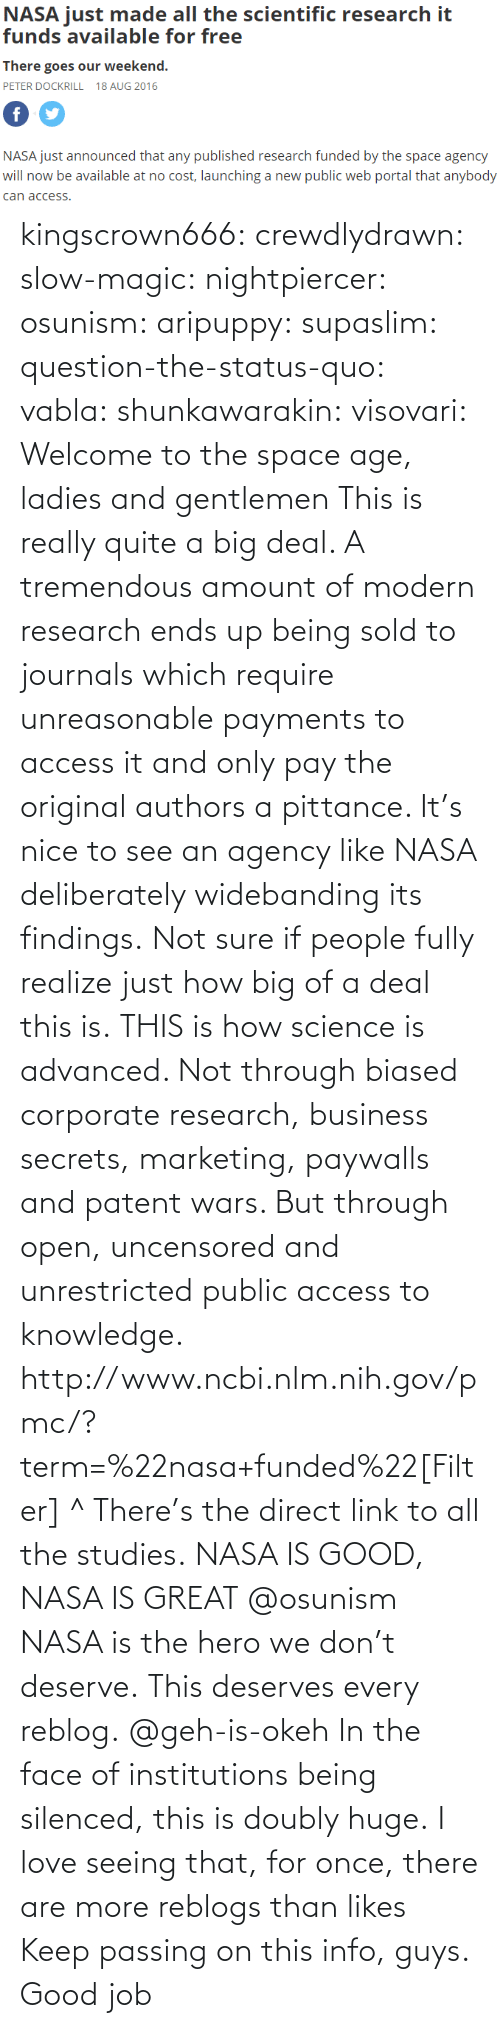 the face: NASA just mde alll the sciemtiic research i  funds available for free  There goes our weekend.  PETER DOCKRILL 18 AUG 2016  NASA just announced that any published research funded by the space agency  will now be available at no cost, launching a new public web portal that anybody  can access kingscrown666: crewdlydrawn:  slow-magic:   nightpiercer:  osunism:  aripuppy:   supaslim:  question-the-status-quo:  vabla:  shunkawarakin:  visovari:  Welcome to the space age, ladies and gentlemen  This is really quite a big deal. A tremendous amount of modern research ends up being sold to journals which require unreasonable payments to access it and only pay the original authors a pittance. It's nice to see an agency like NASA deliberately widebanding its findings.  Not sure if people fully realize just how big of a deal this is.  THIS is how science is advanced. Not through biased corporate research, business secrets, marketing, paywalls and patent wars. But through open, uncensored and unrestricted public access to knowledge.  http://www.ncbi.nlm.nih.gov/pmc/?term=%22nasa+funded%22[Filter] ^ There's the direct link to all the studies.  NASA IS GOOD, NASA IS GREAT  @osunism   NASA is the hero we don't deserve.   This deserves every reblog.  @geh-is-okeh   In the face of institutions being silenced, this is doubly huge.   I love seeing that, for once, there are more reblogs than likes Keep passing on this info, guys. Good job